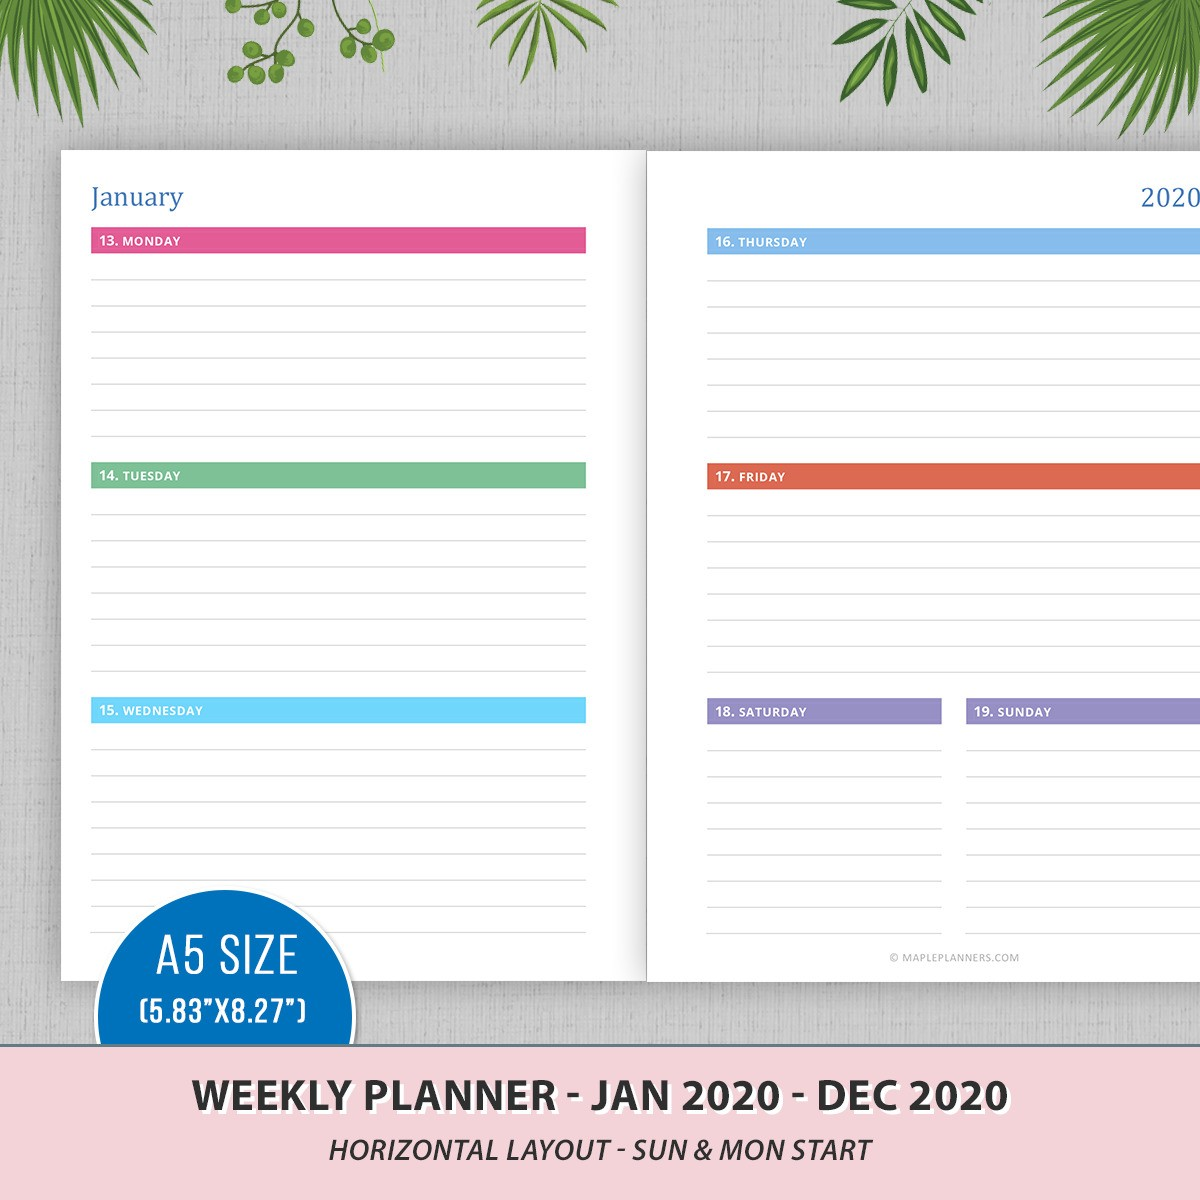 A5 Weekly Planner 2020 - Horzontal Layout